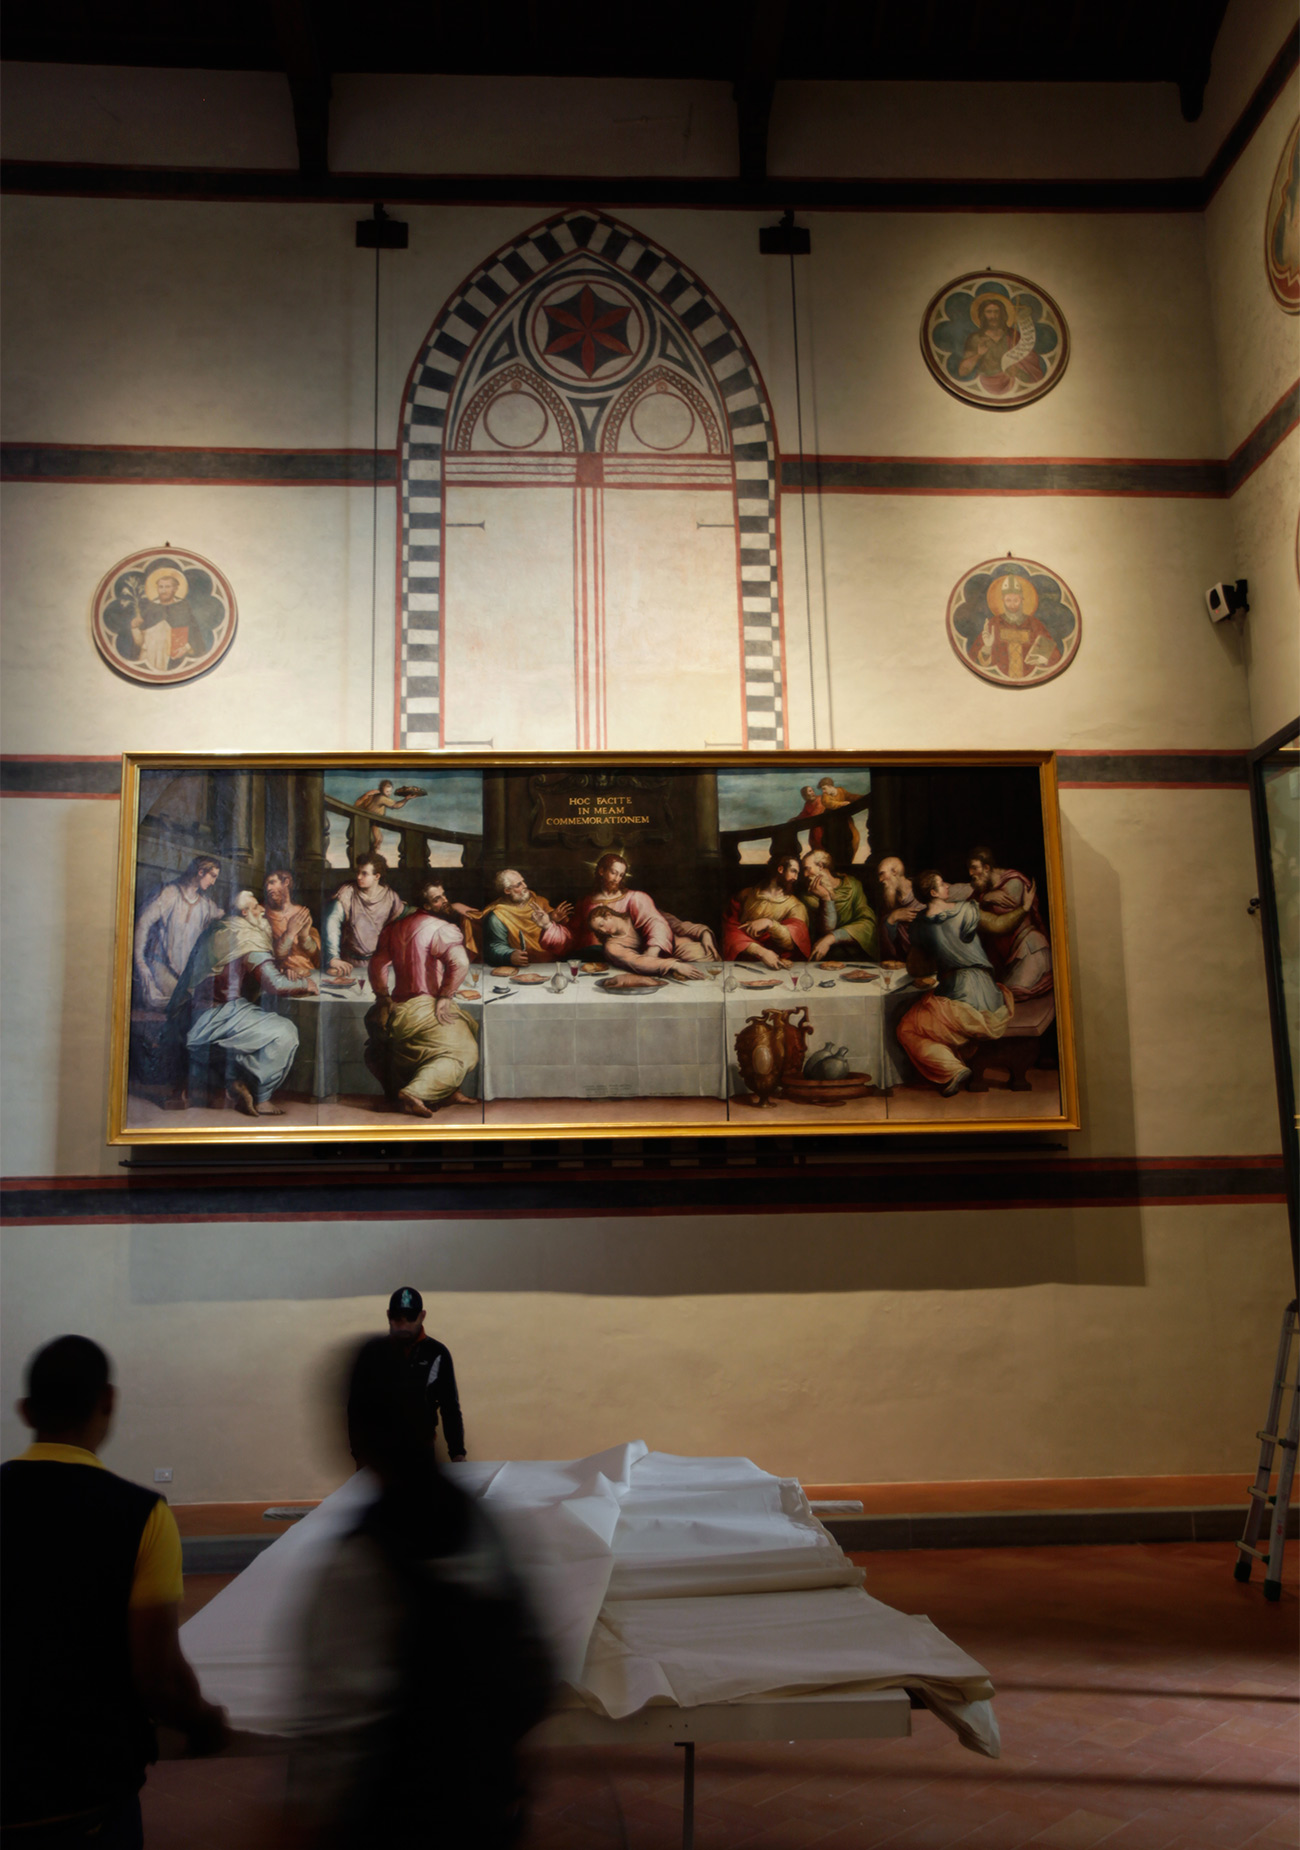 A painting of the las supper hangs high on the wall of a low-lit, churchlike interior